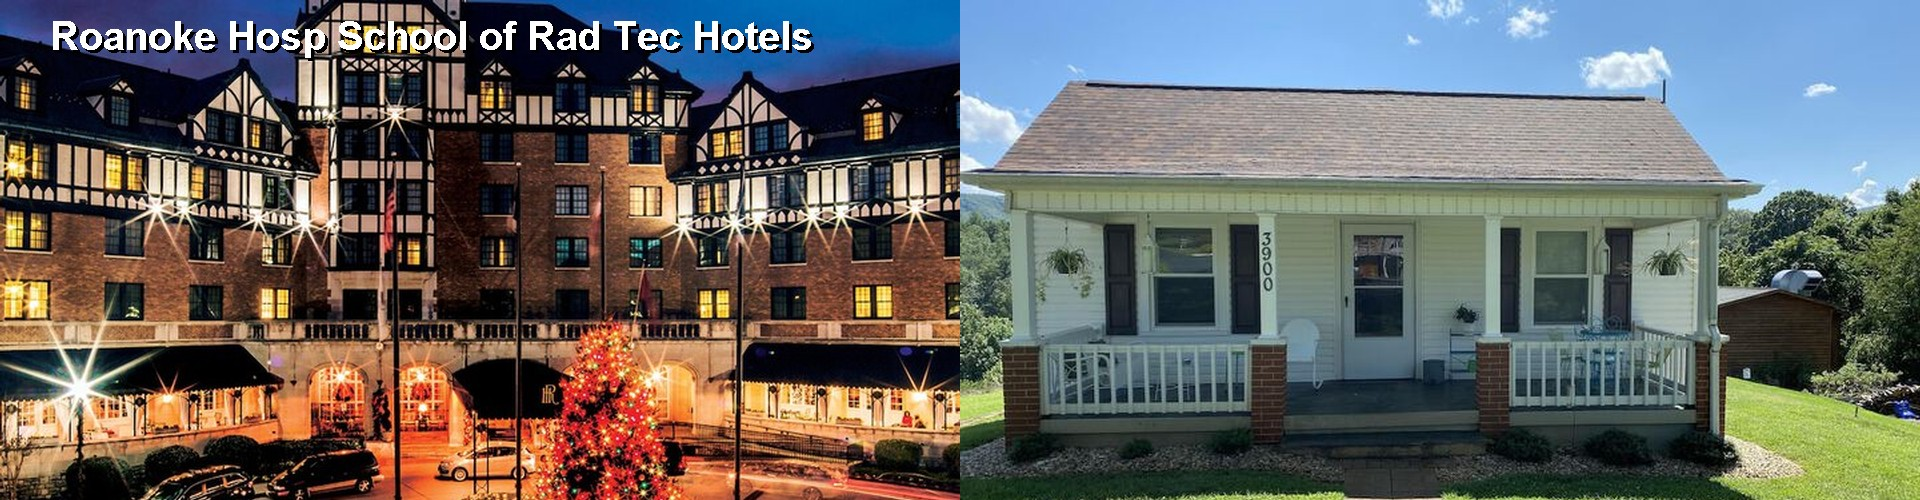 5 Best Hotels near Roanoke Hosp School of Rad Tec